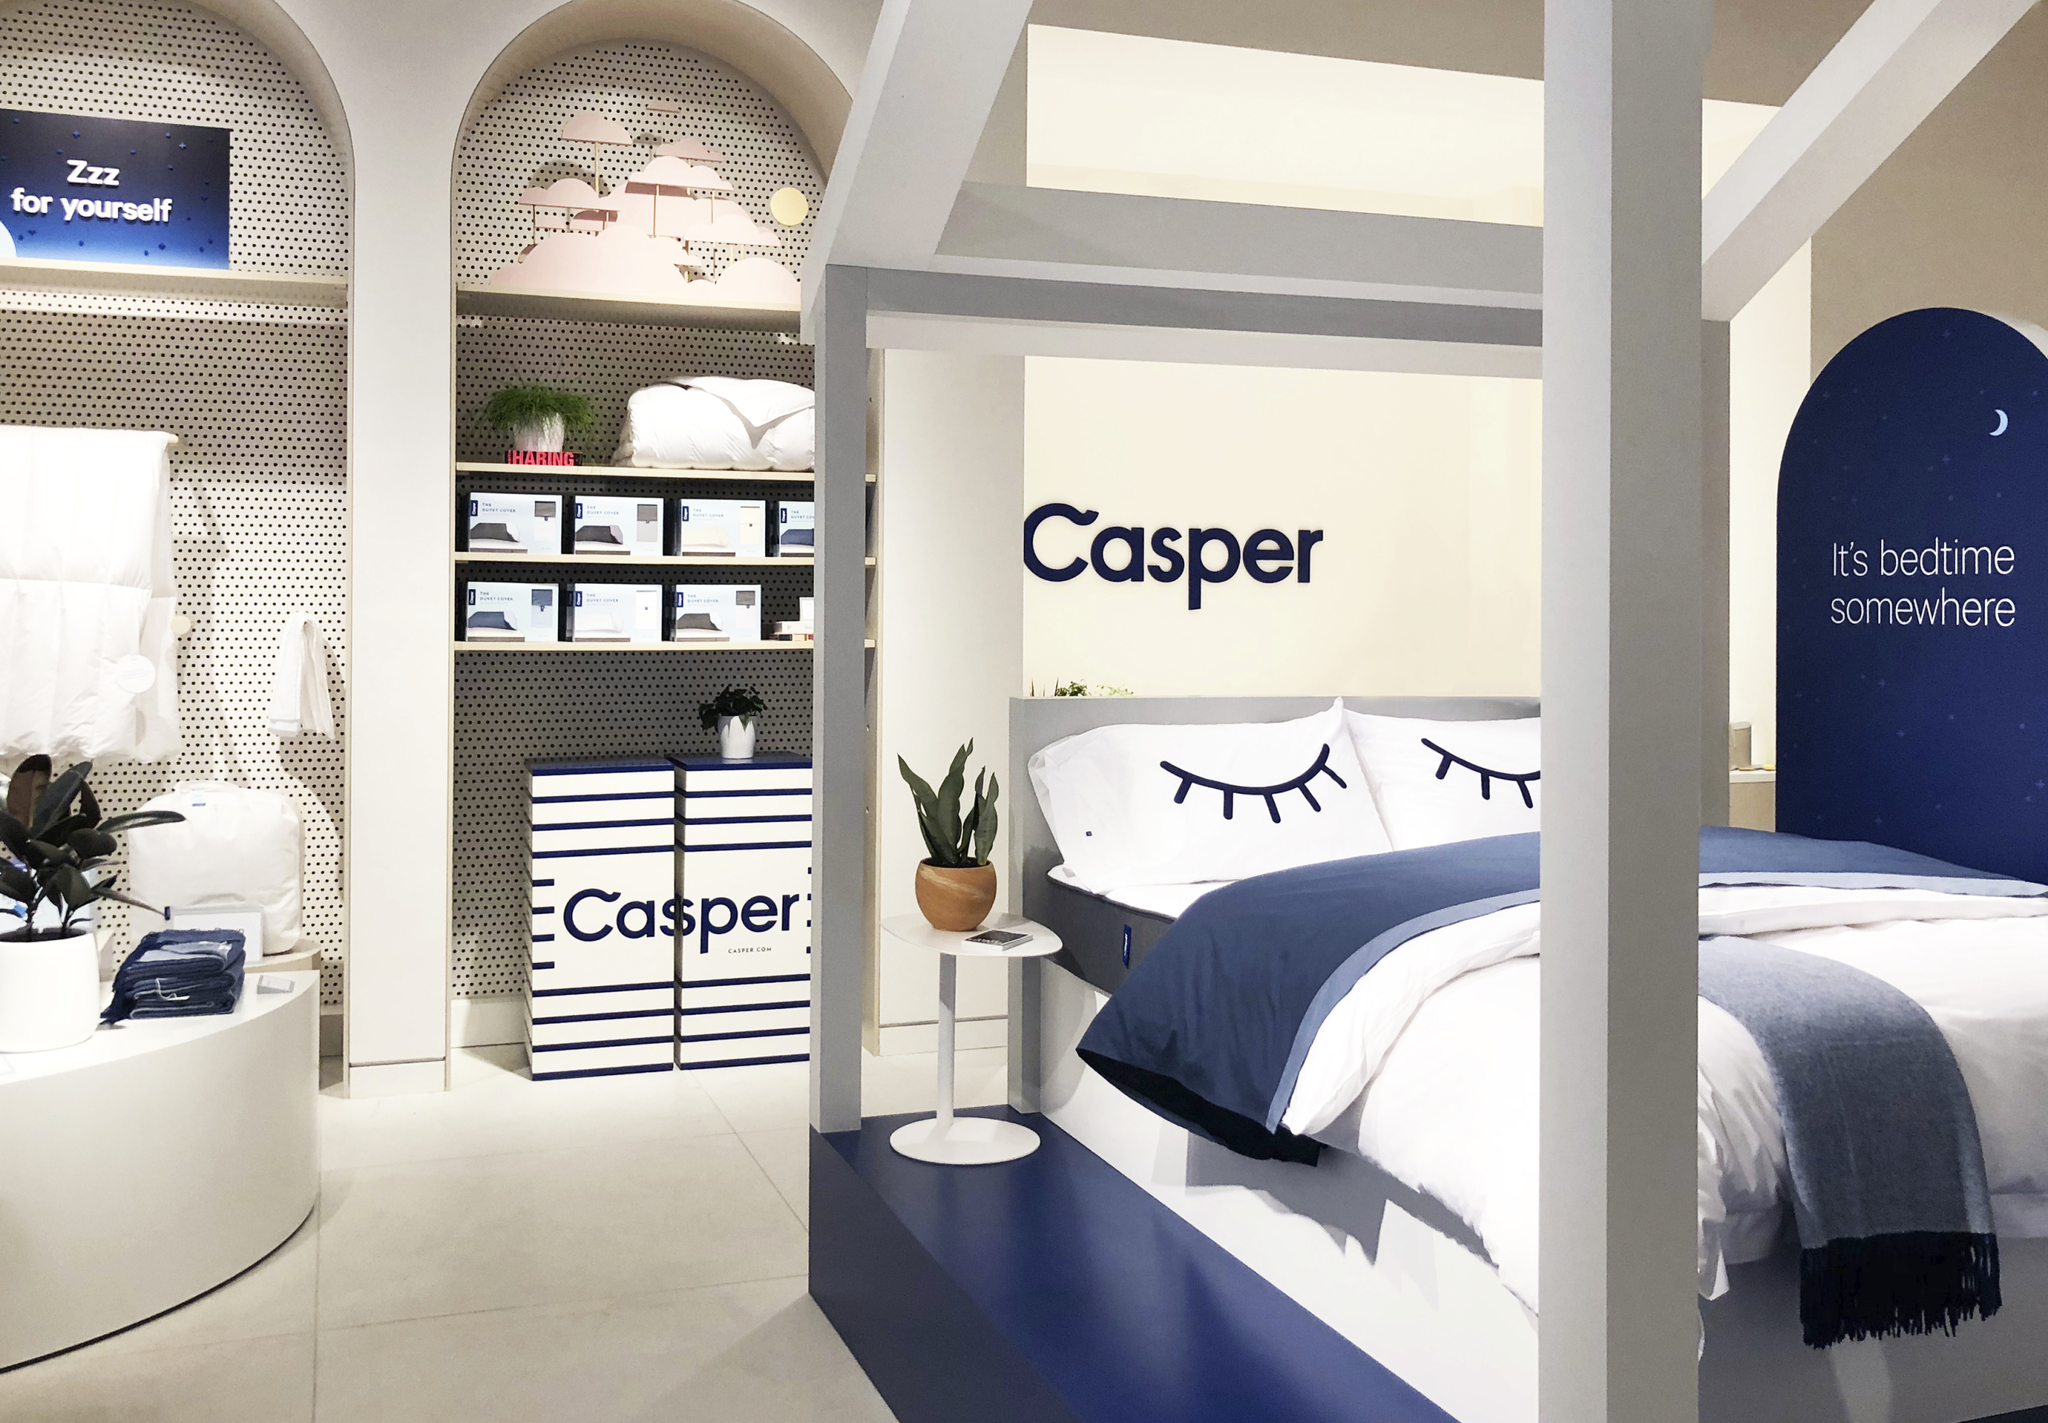 Casper, Mattress Firm, and the Retail Lifecycle